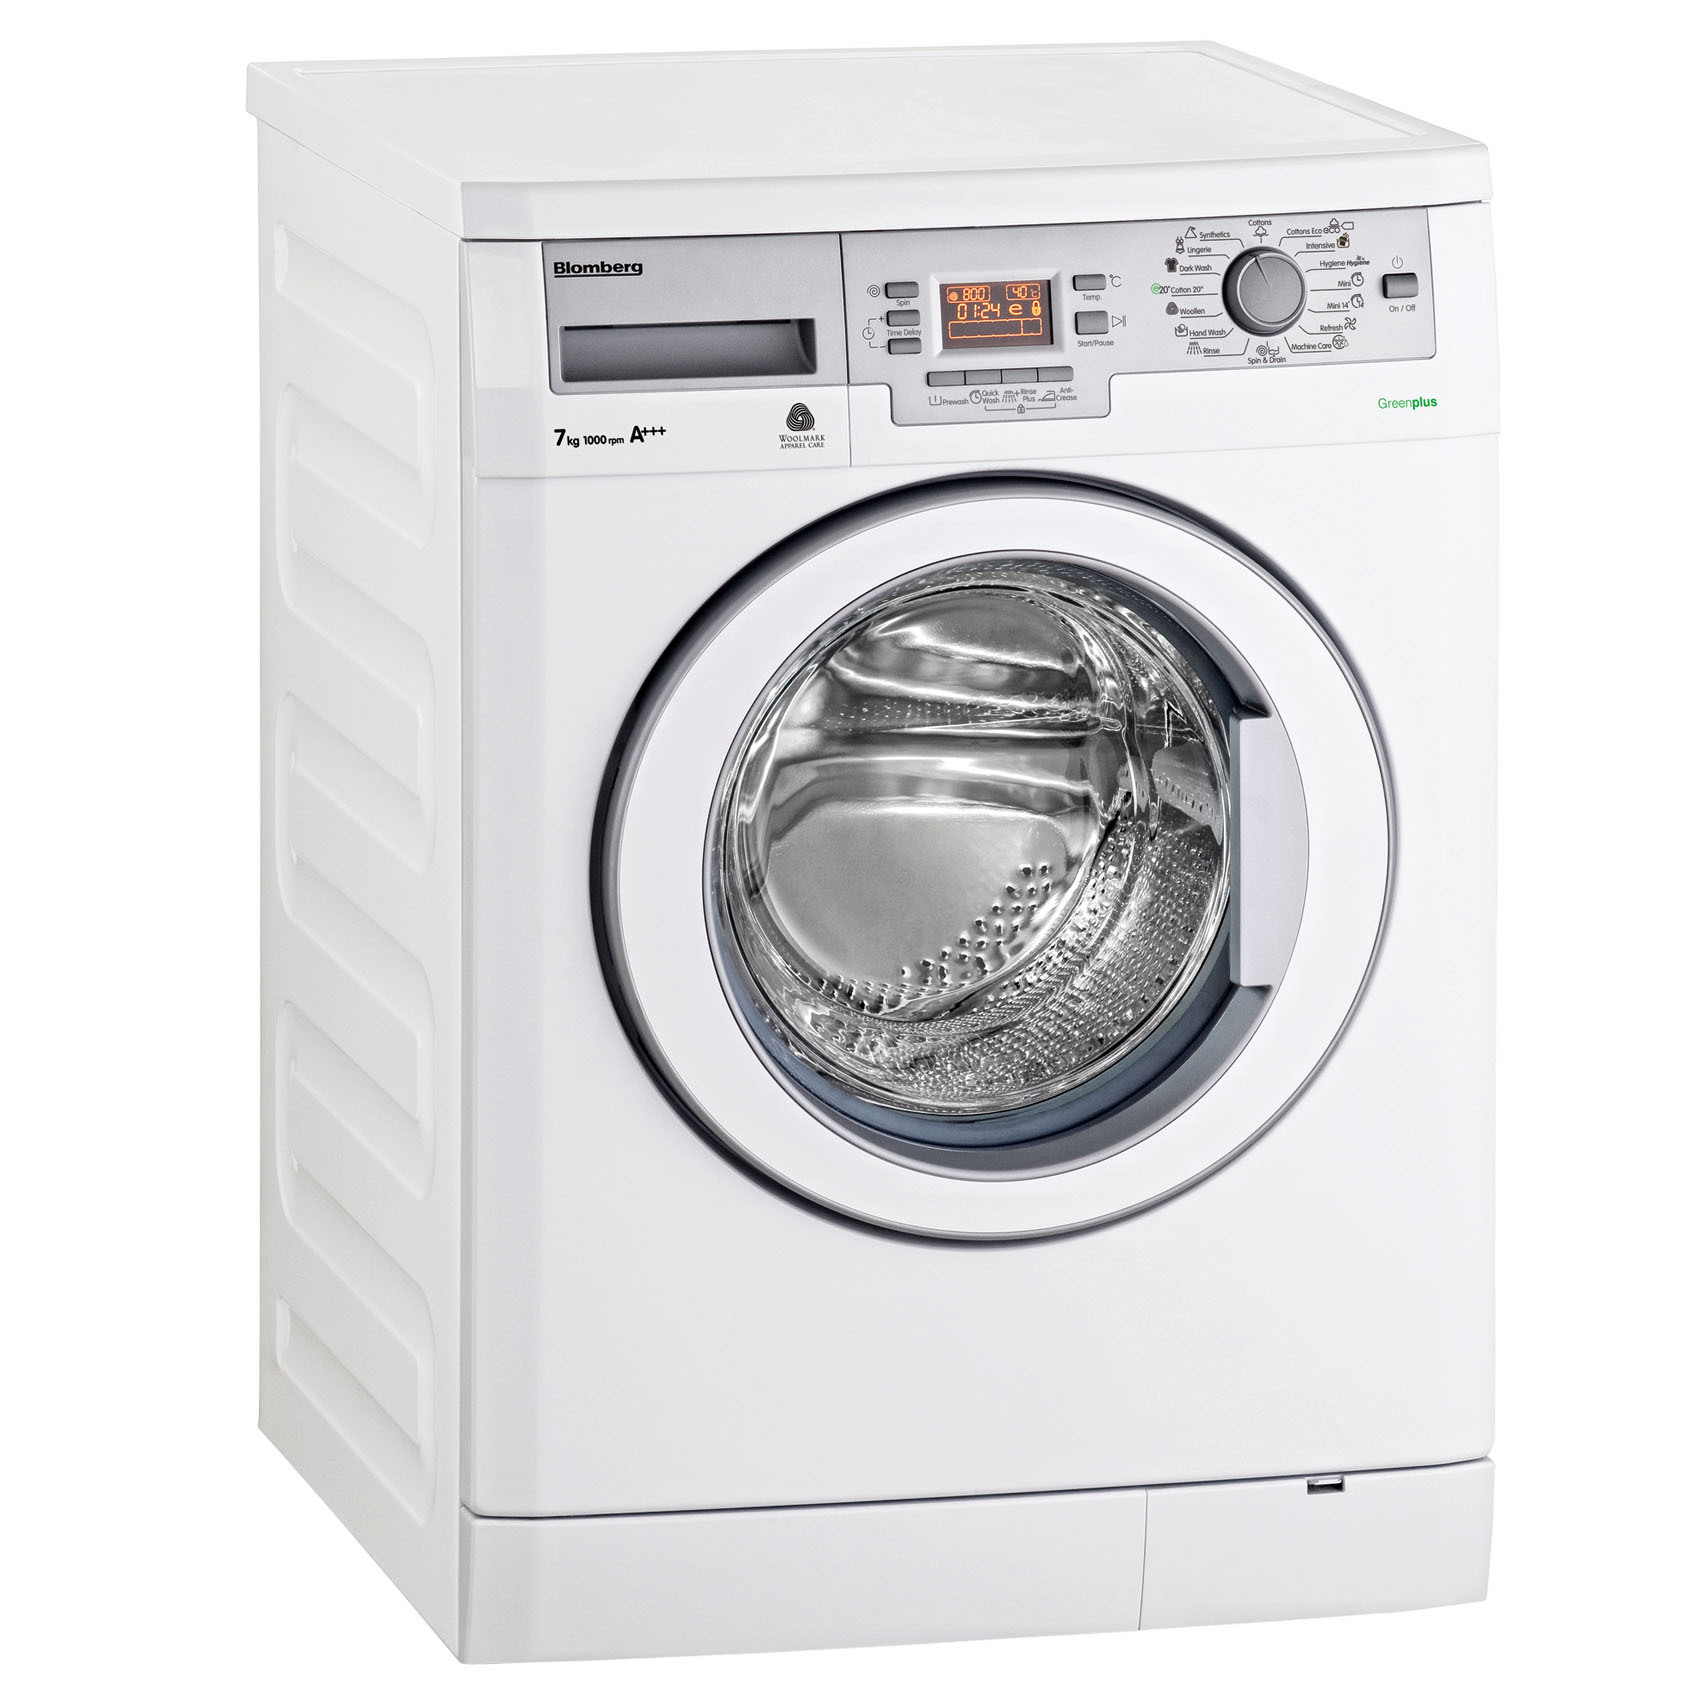 BLOMBERG WASHER WNF7400A30 7KG